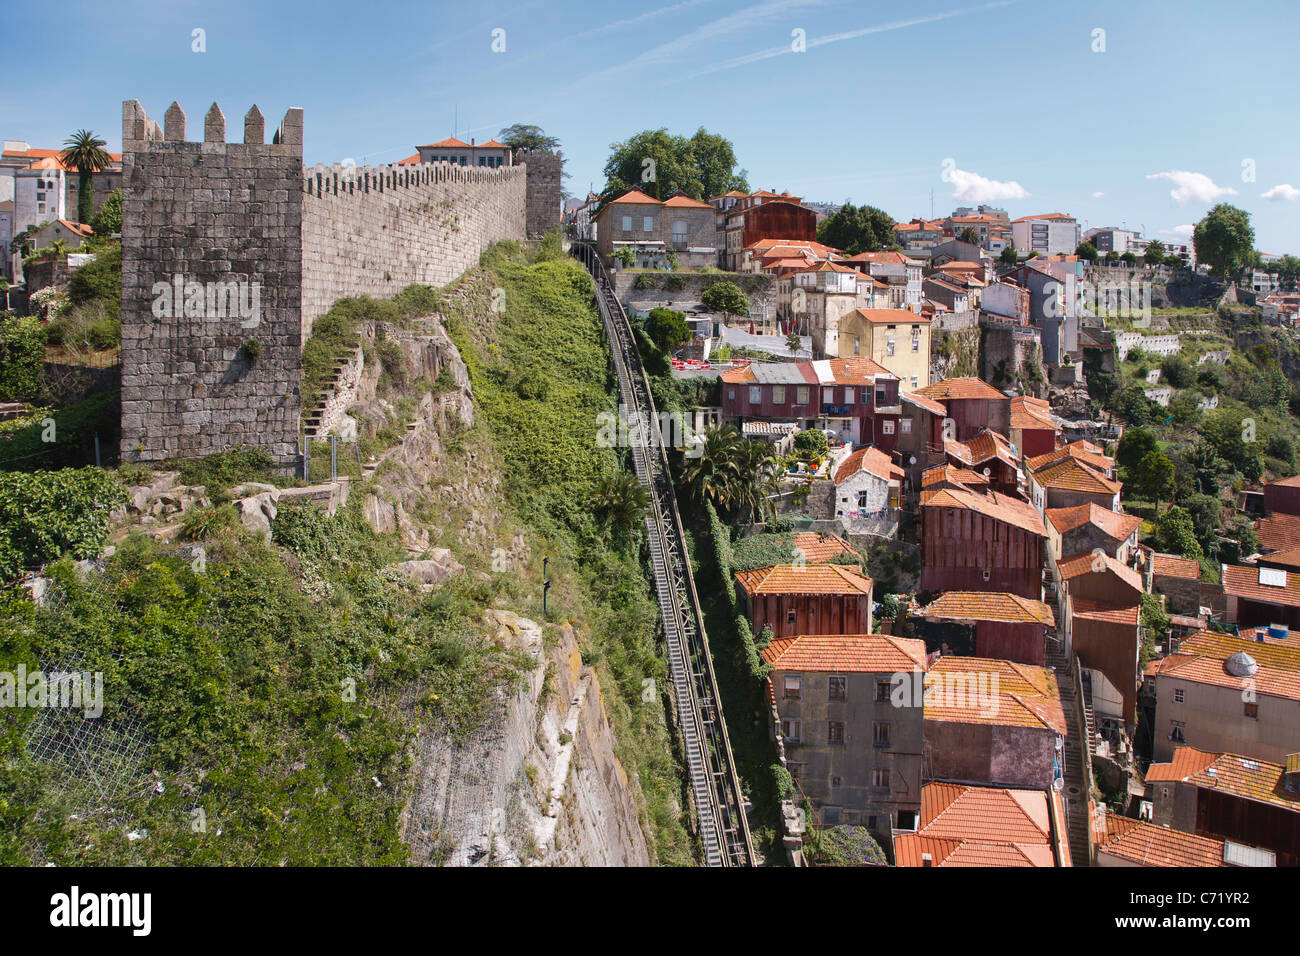 Funicular railway rising between old walls and dwellings. Porto - Stock Image